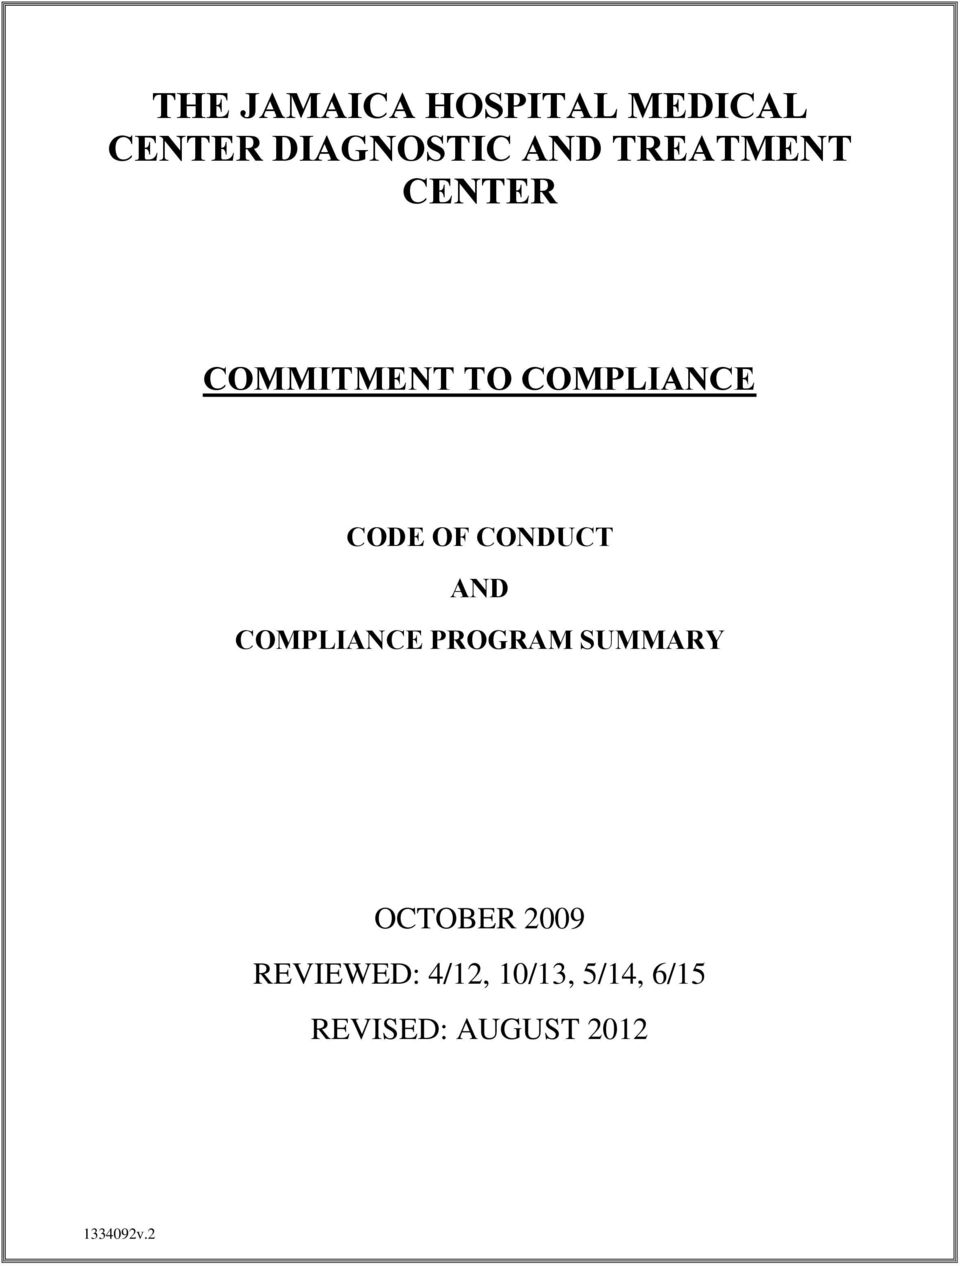 CONDUCT AND COMPLIANCE PROGRAM SUMMARY OCTOBER 2009